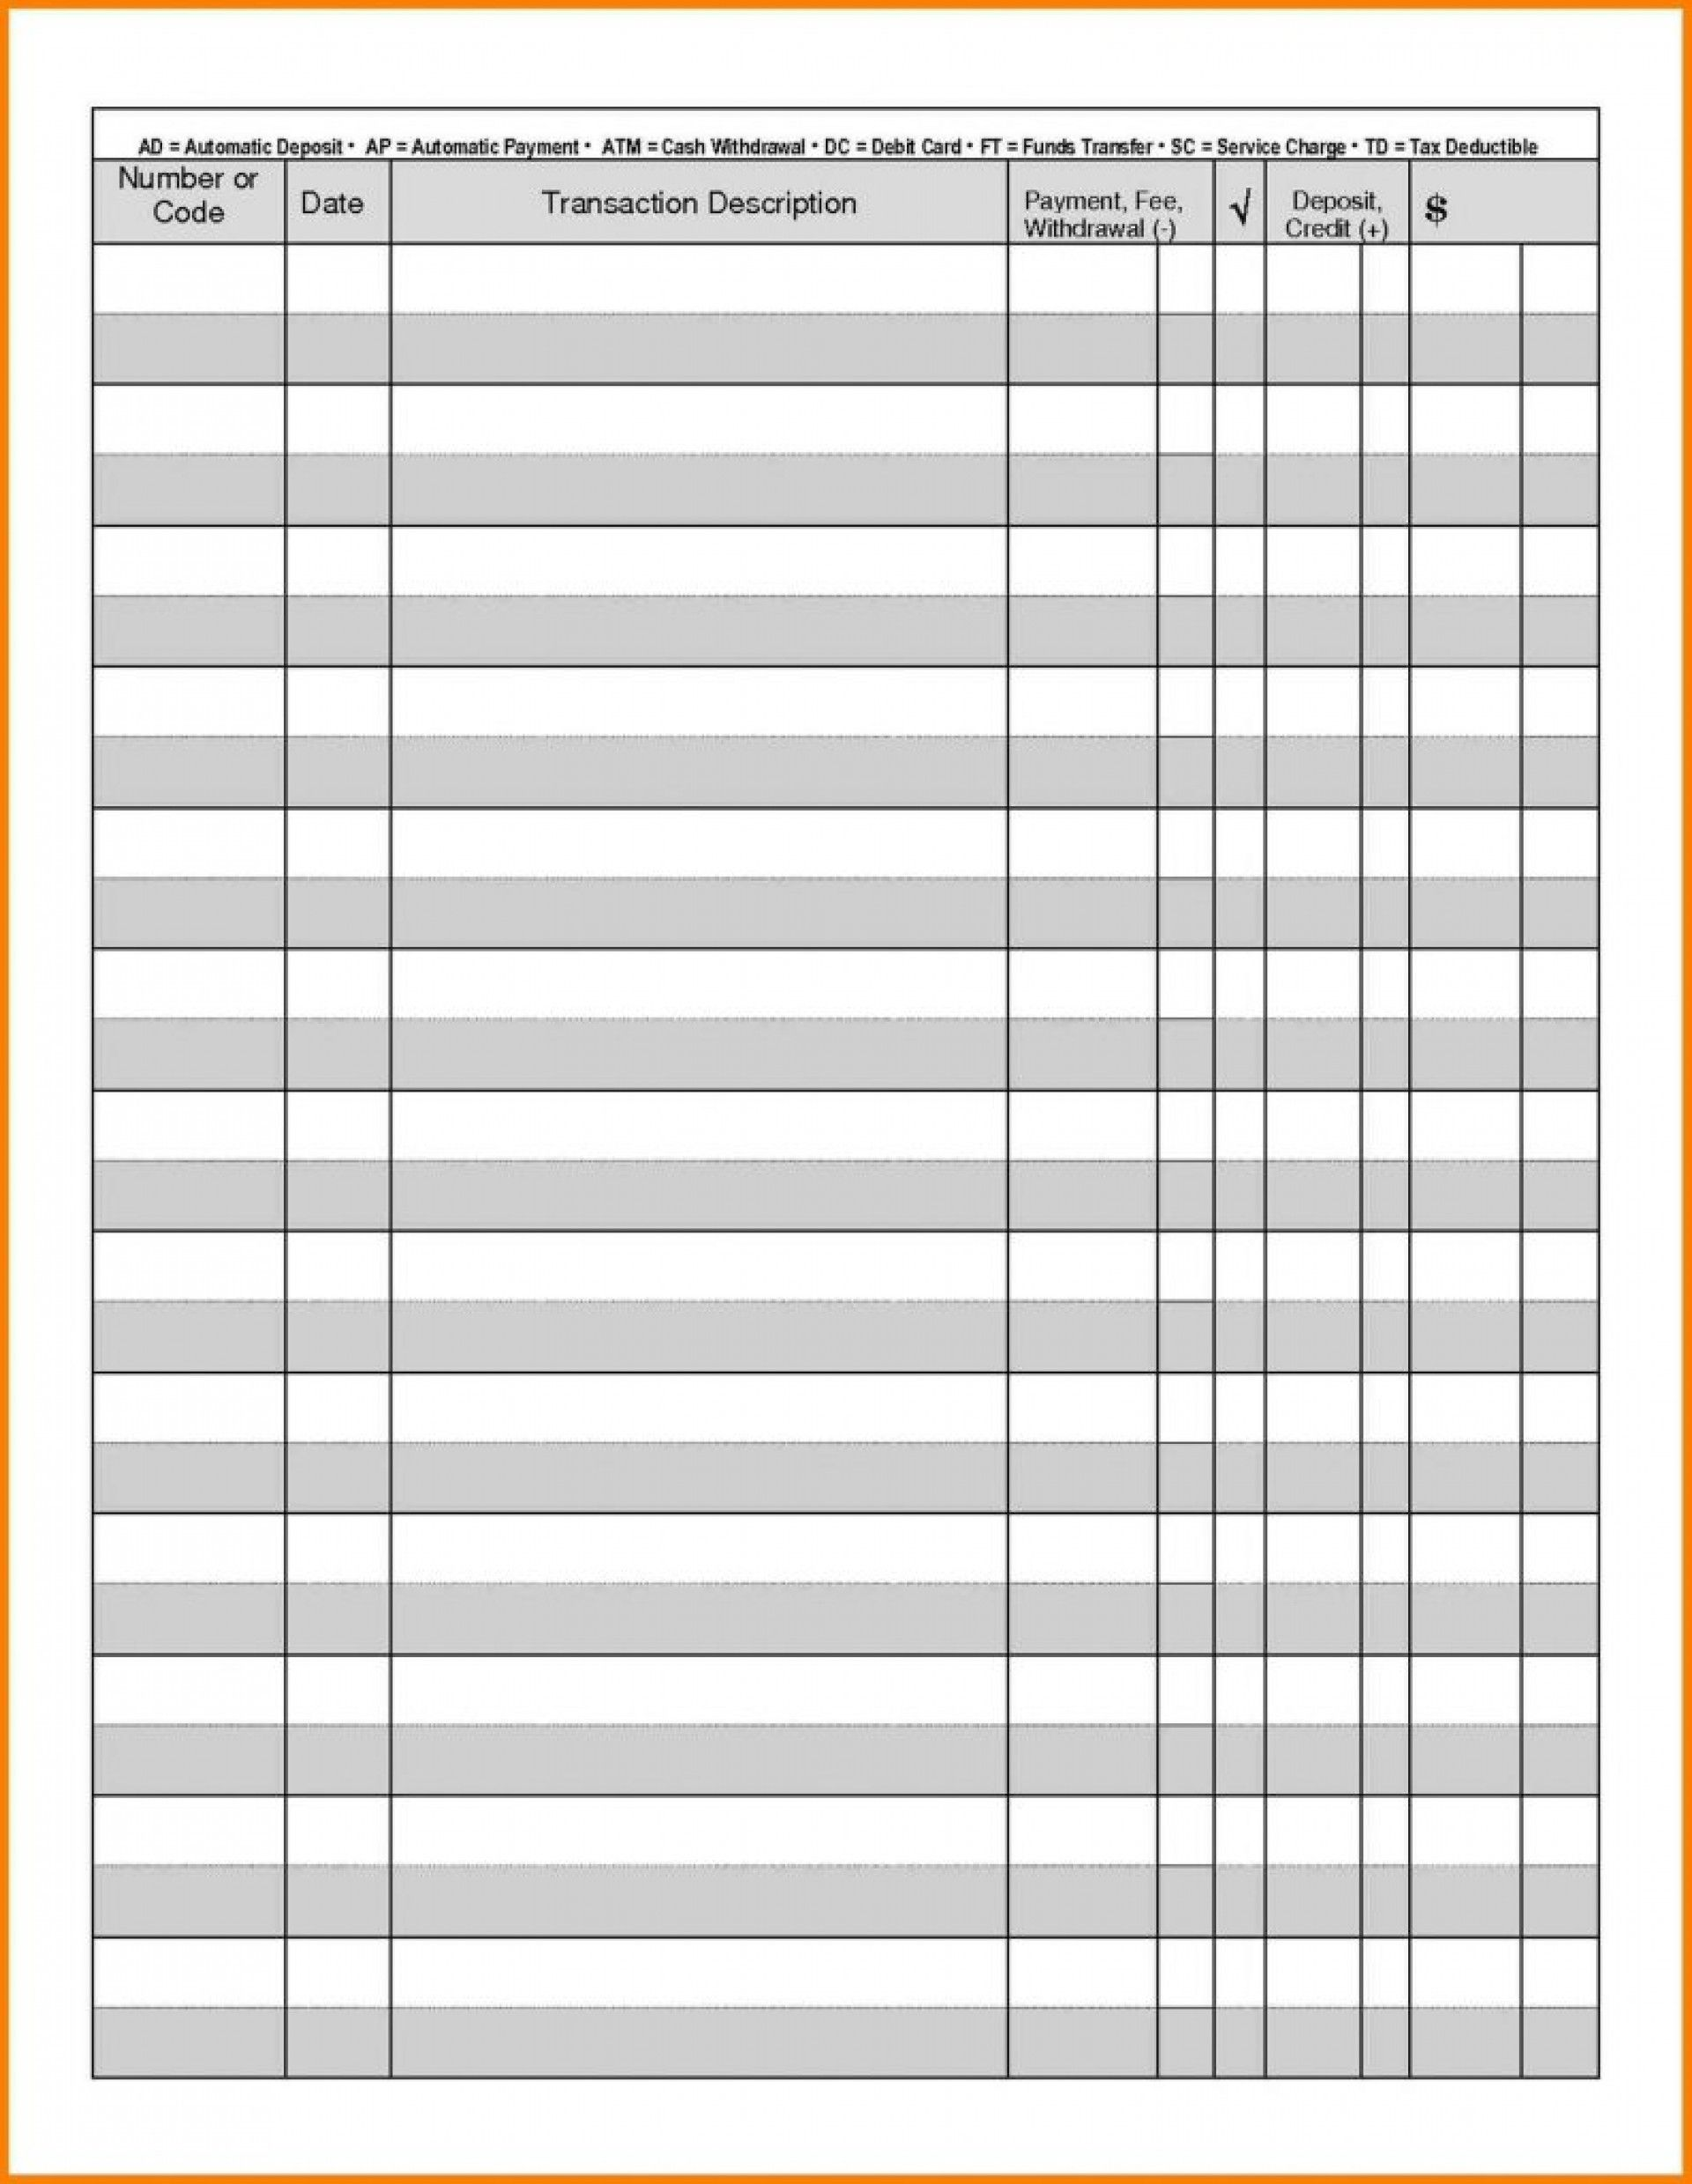 Downloadable Checkbook Registers New 021 Printable Checkbook Register Sheets Full Page Check Mavensocia Checkbook Register Printable Check Register Checkbook